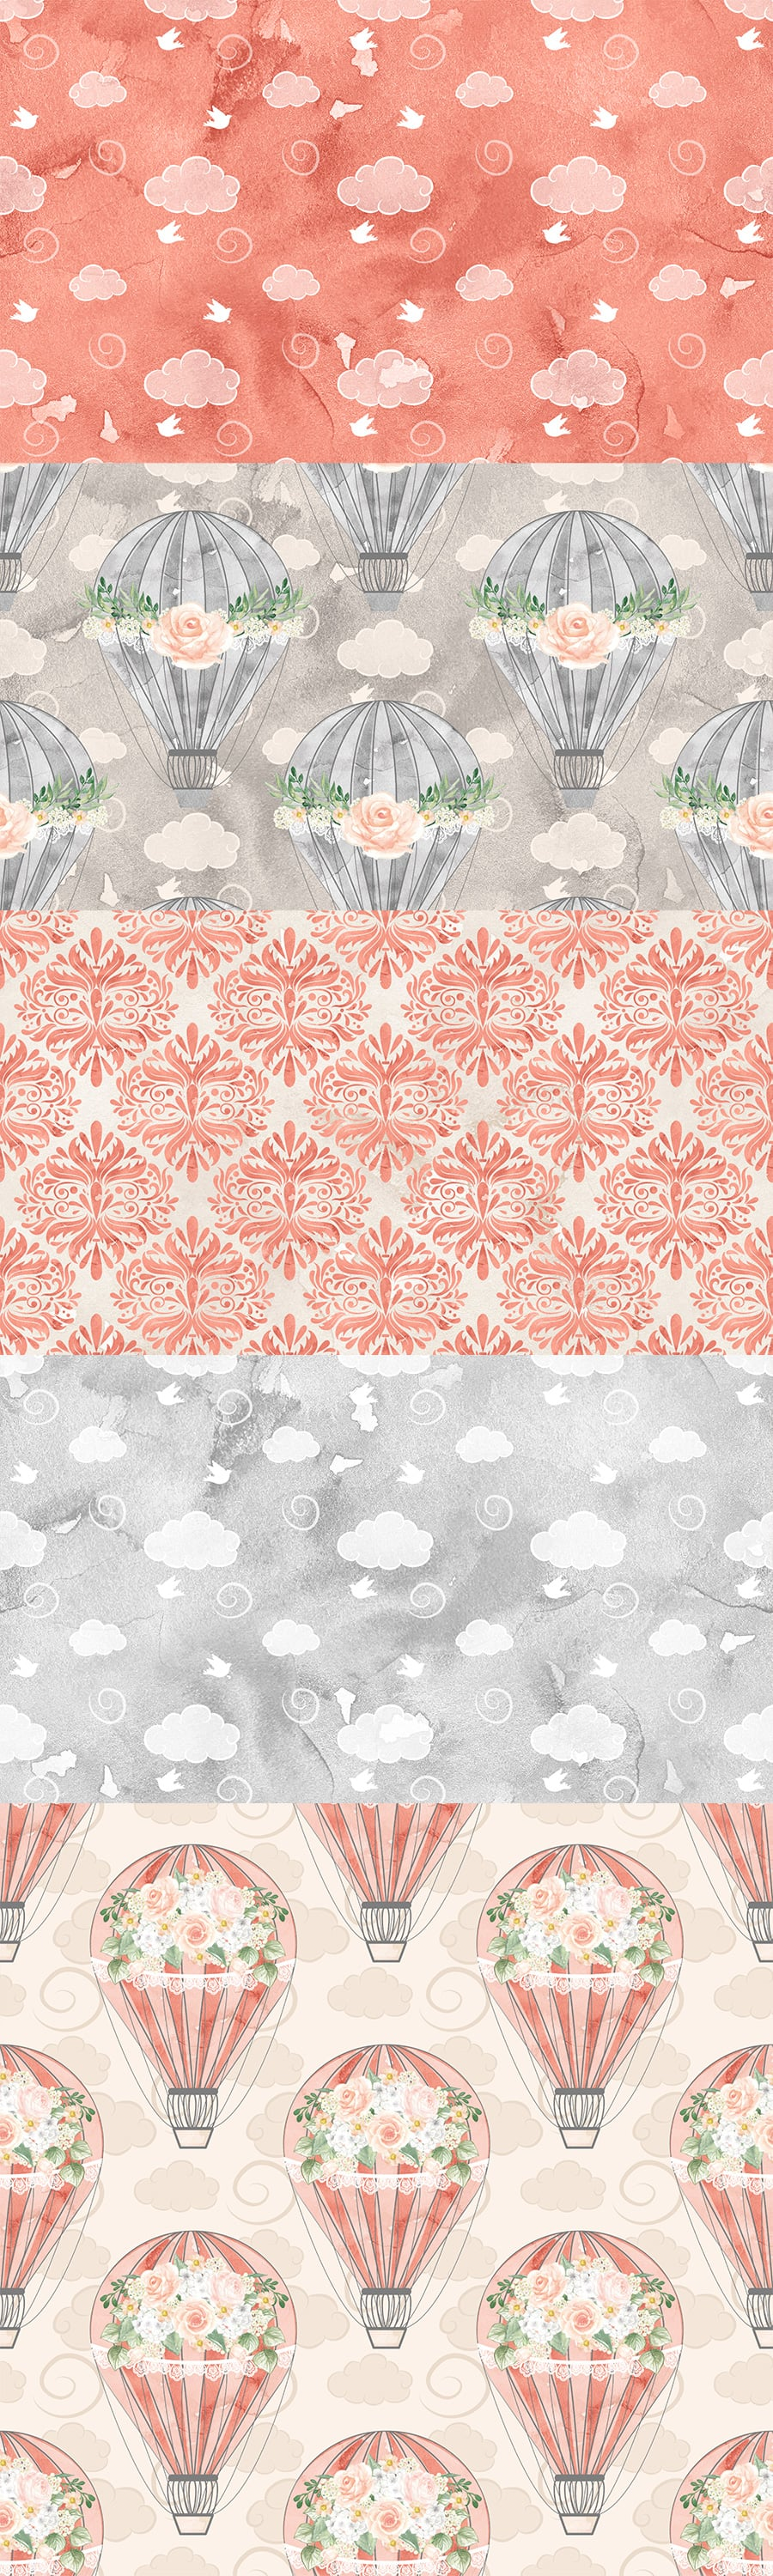 Watercolor Hot Air balloon flowers digital paper, Balloon pattern, seamless pattern, Repeatable Digital Paper, coral red, gray, damask